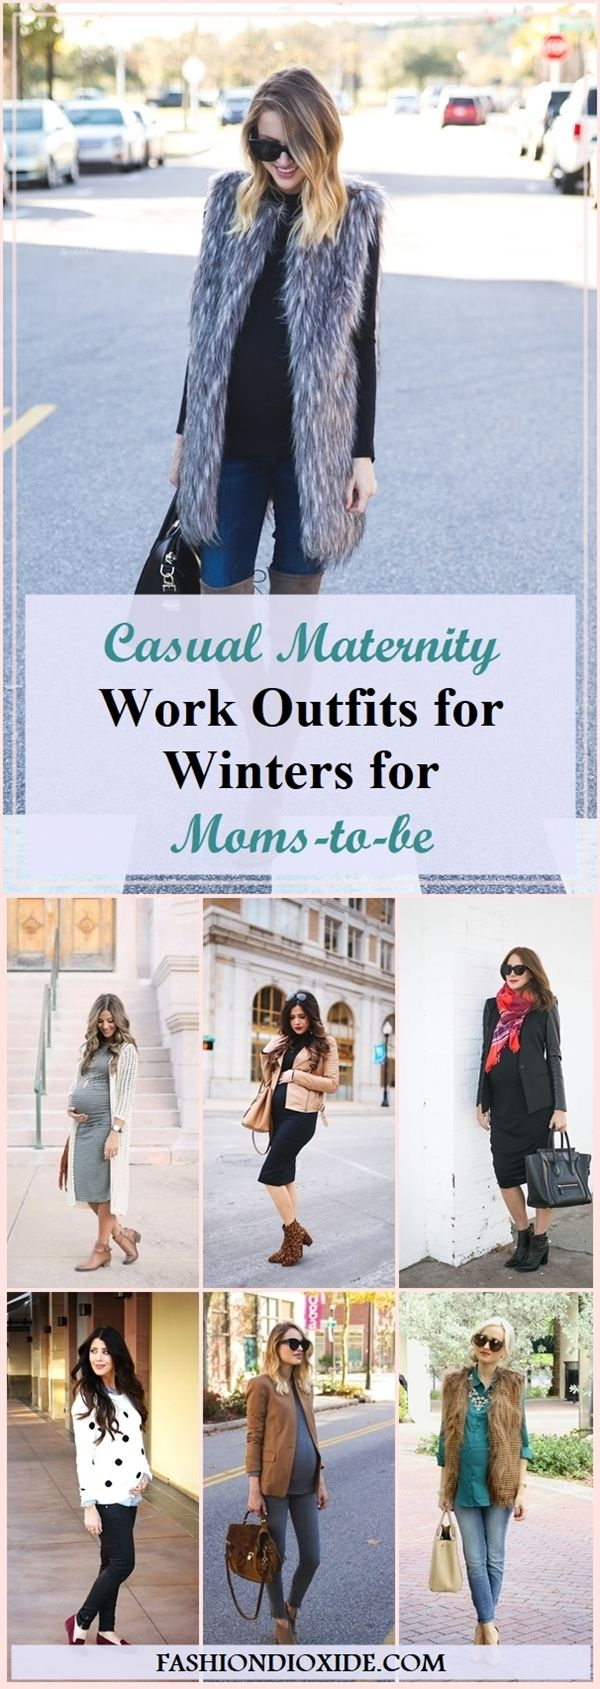 45 Casual Maternity Work Outfits for Winters for Moms-to-be – Fashiondioxide